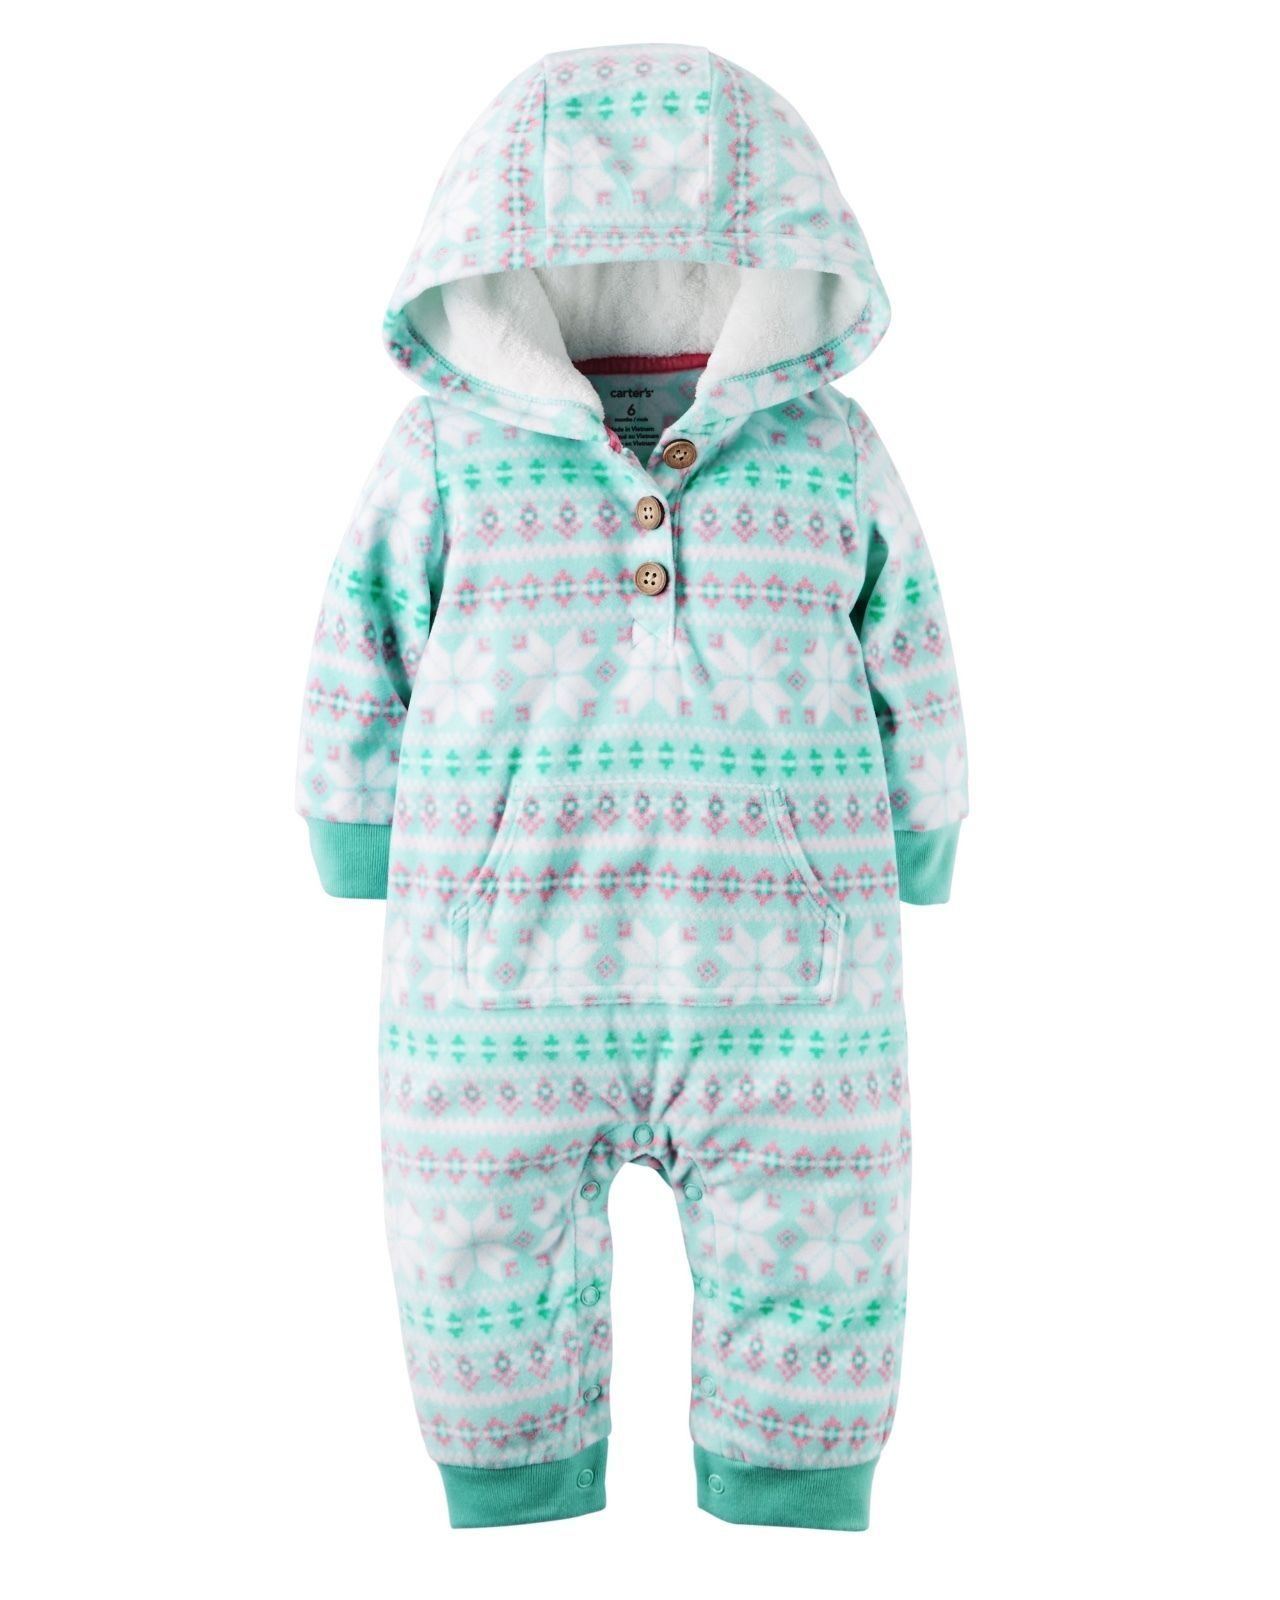 258473f948f6 Details about Carter s NWT 12M 18M Infant Girl Fleece Hooded ...